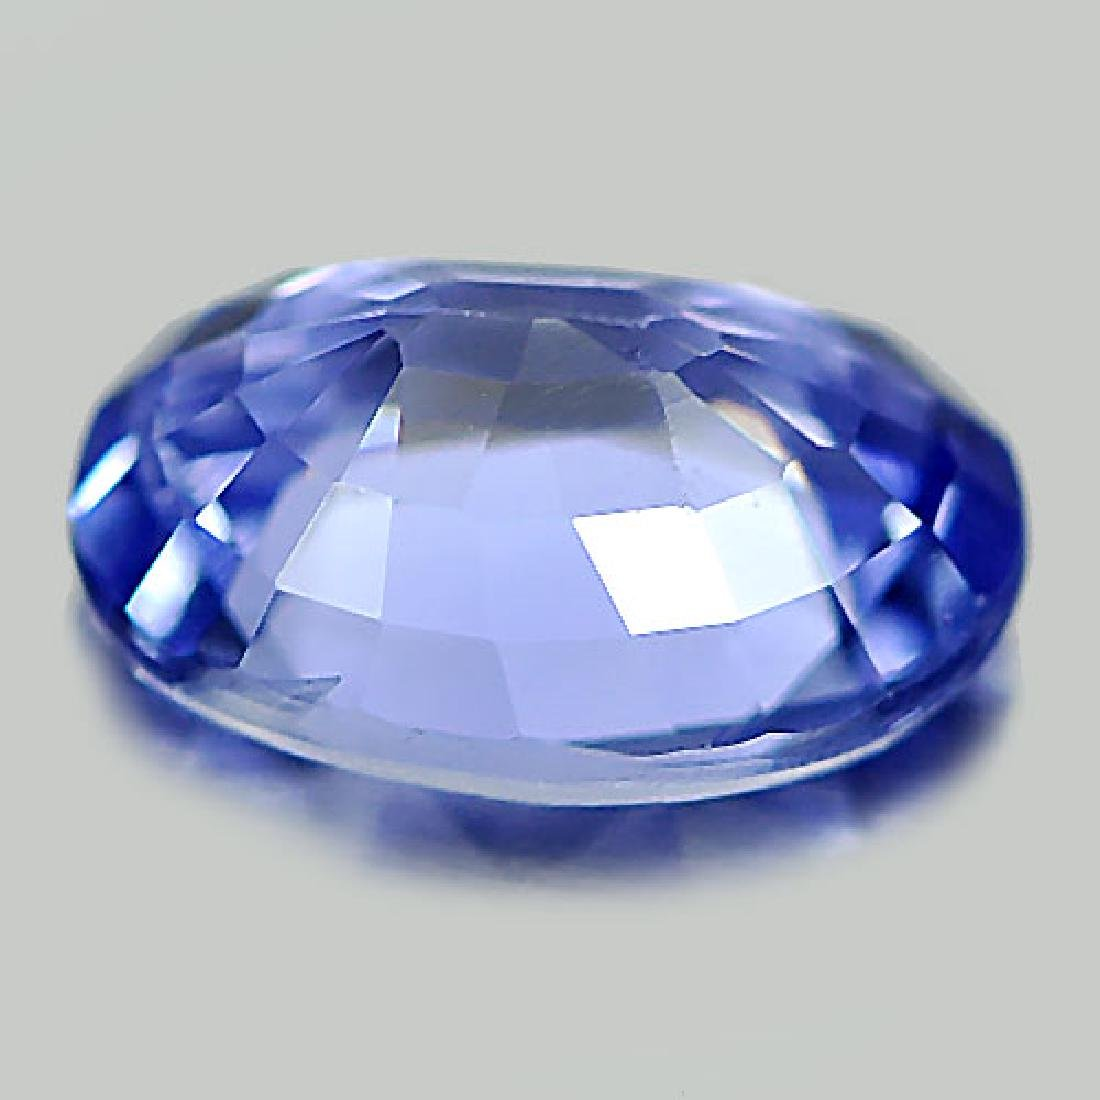 Delightful 1.06 Ct. Natural Blue Sapphire Oval Shape - 3